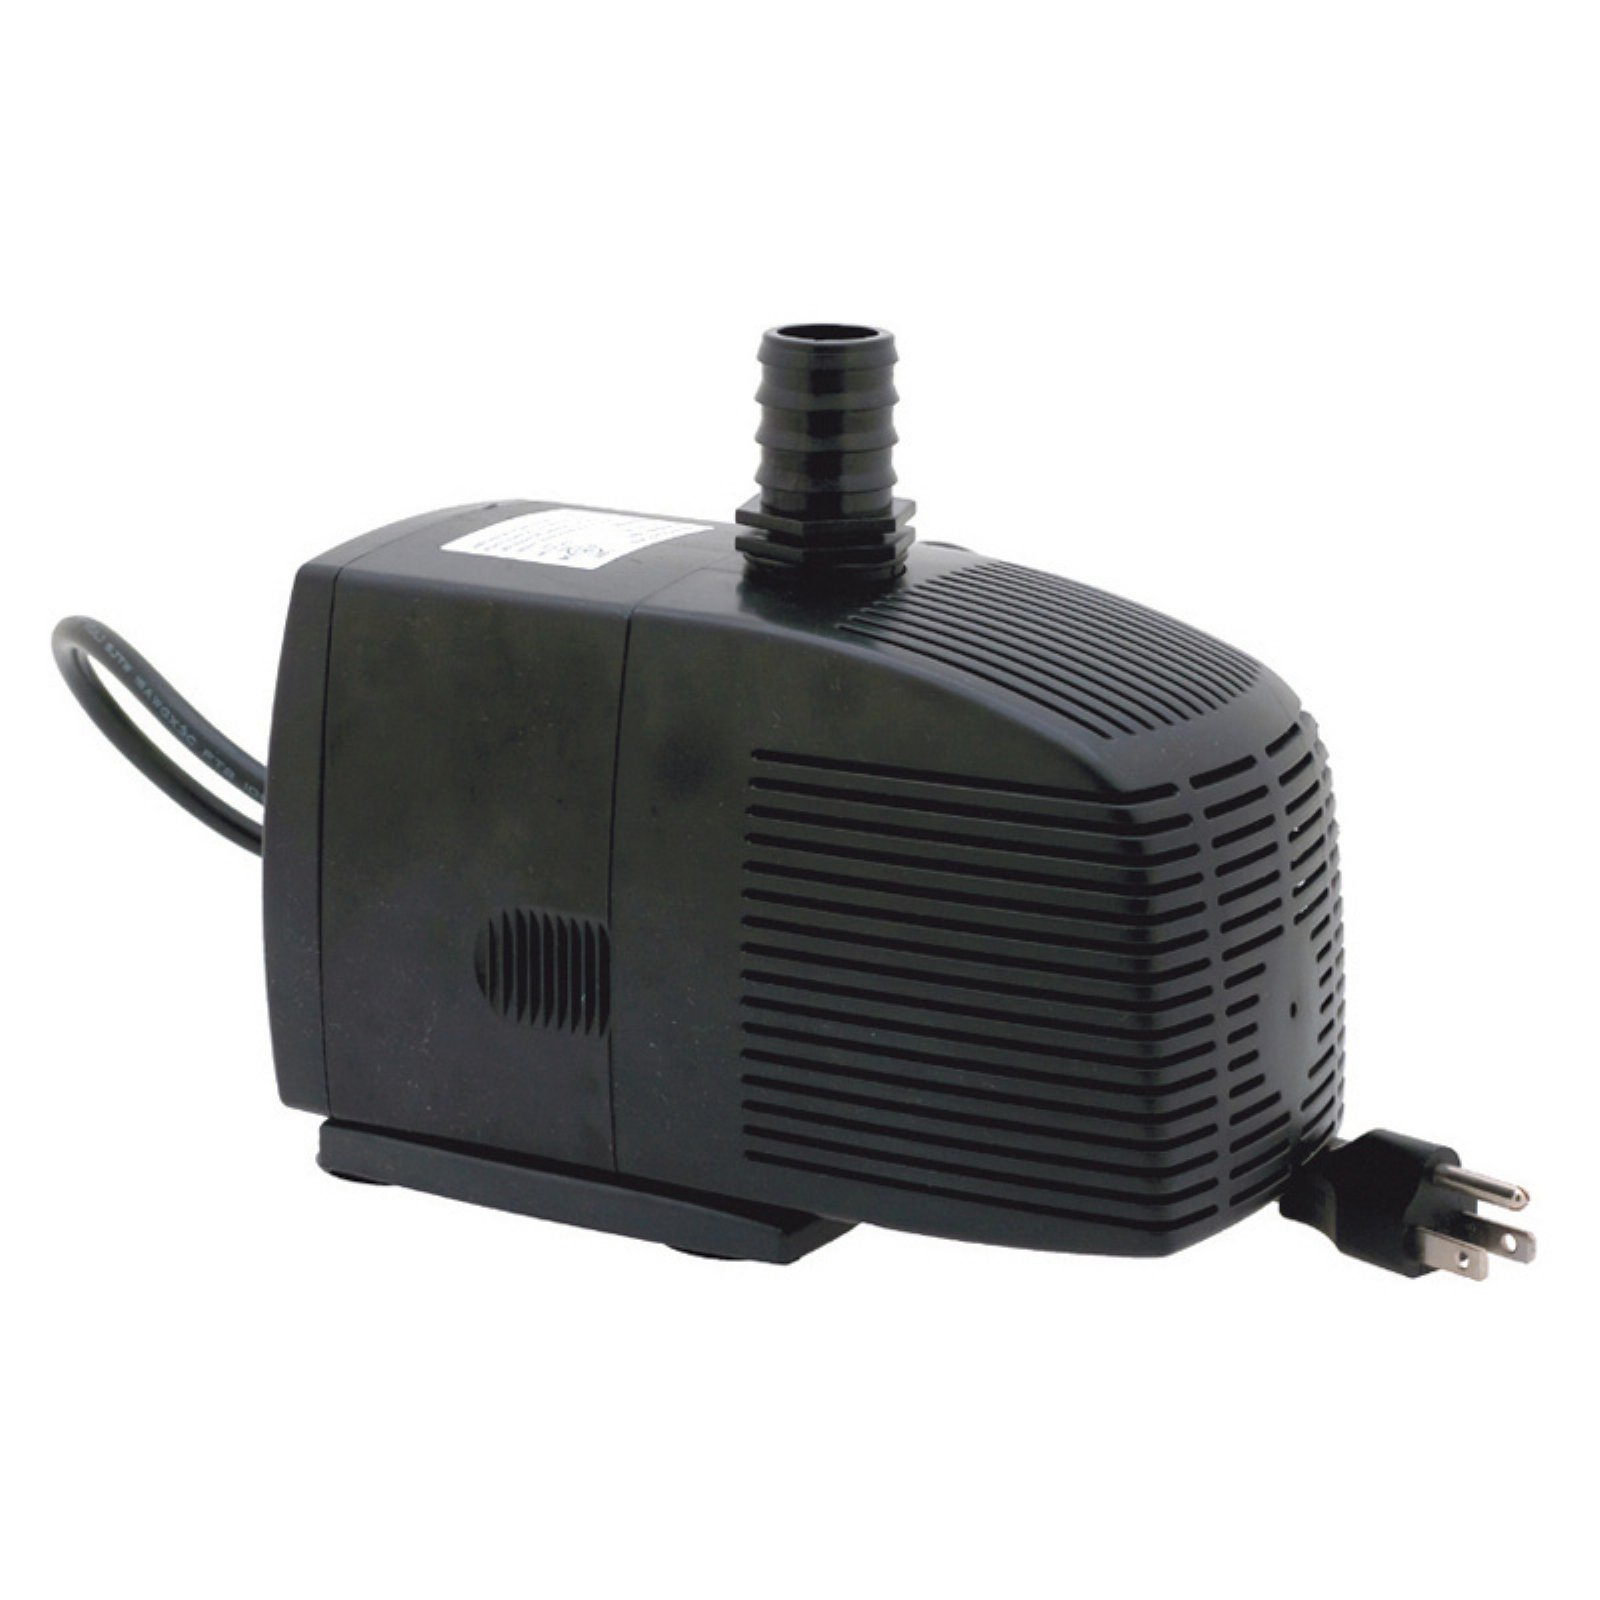 Active Aqua Pump Size Hydroponics System Submersible Pump Affordable Backyard Ideas